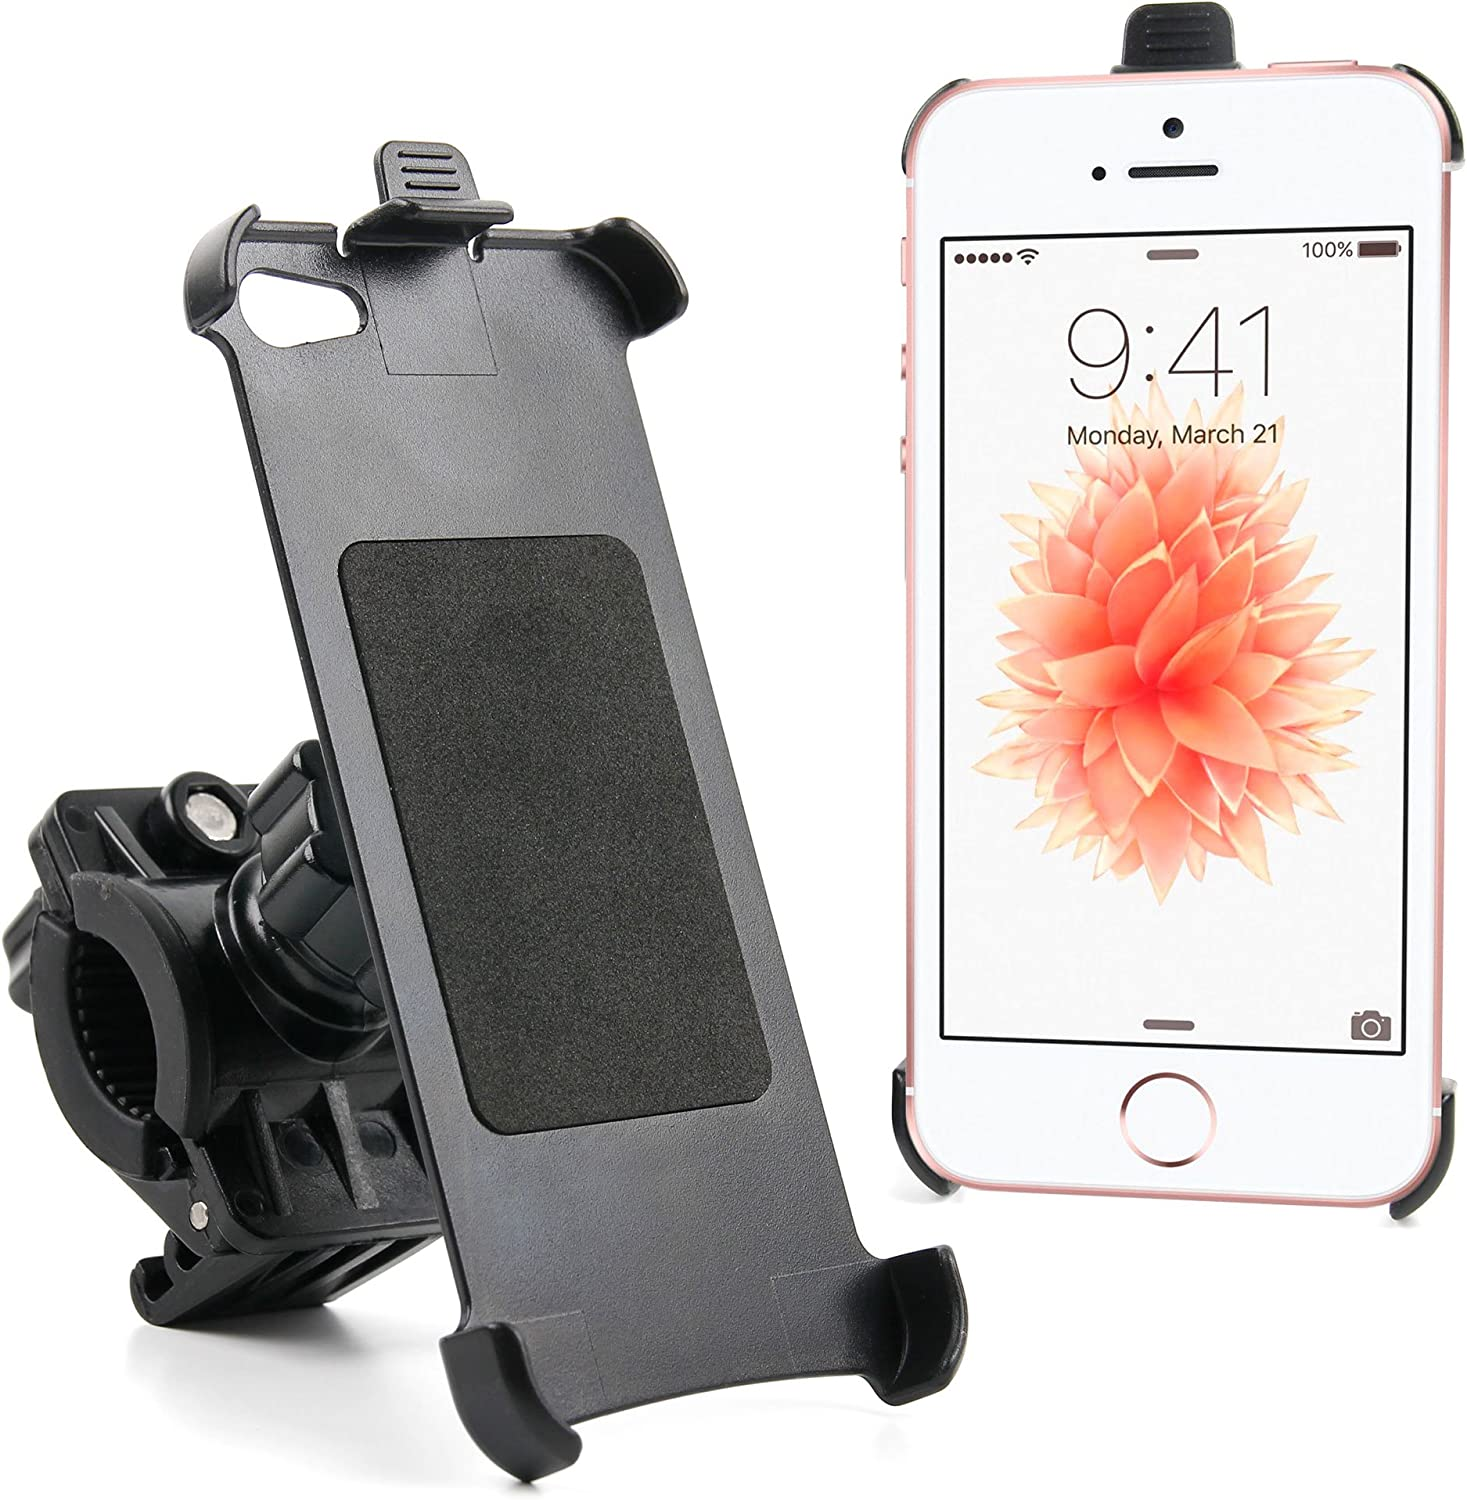 DURAGADGET Mountain Bike Handlebar Clamp Mount With Rotating Ball Joint Cradle - Custom Designed For The NEW Apple iPhone SE (2016) and Apple iPhone 5 (16GB, 32GB, 64GB)